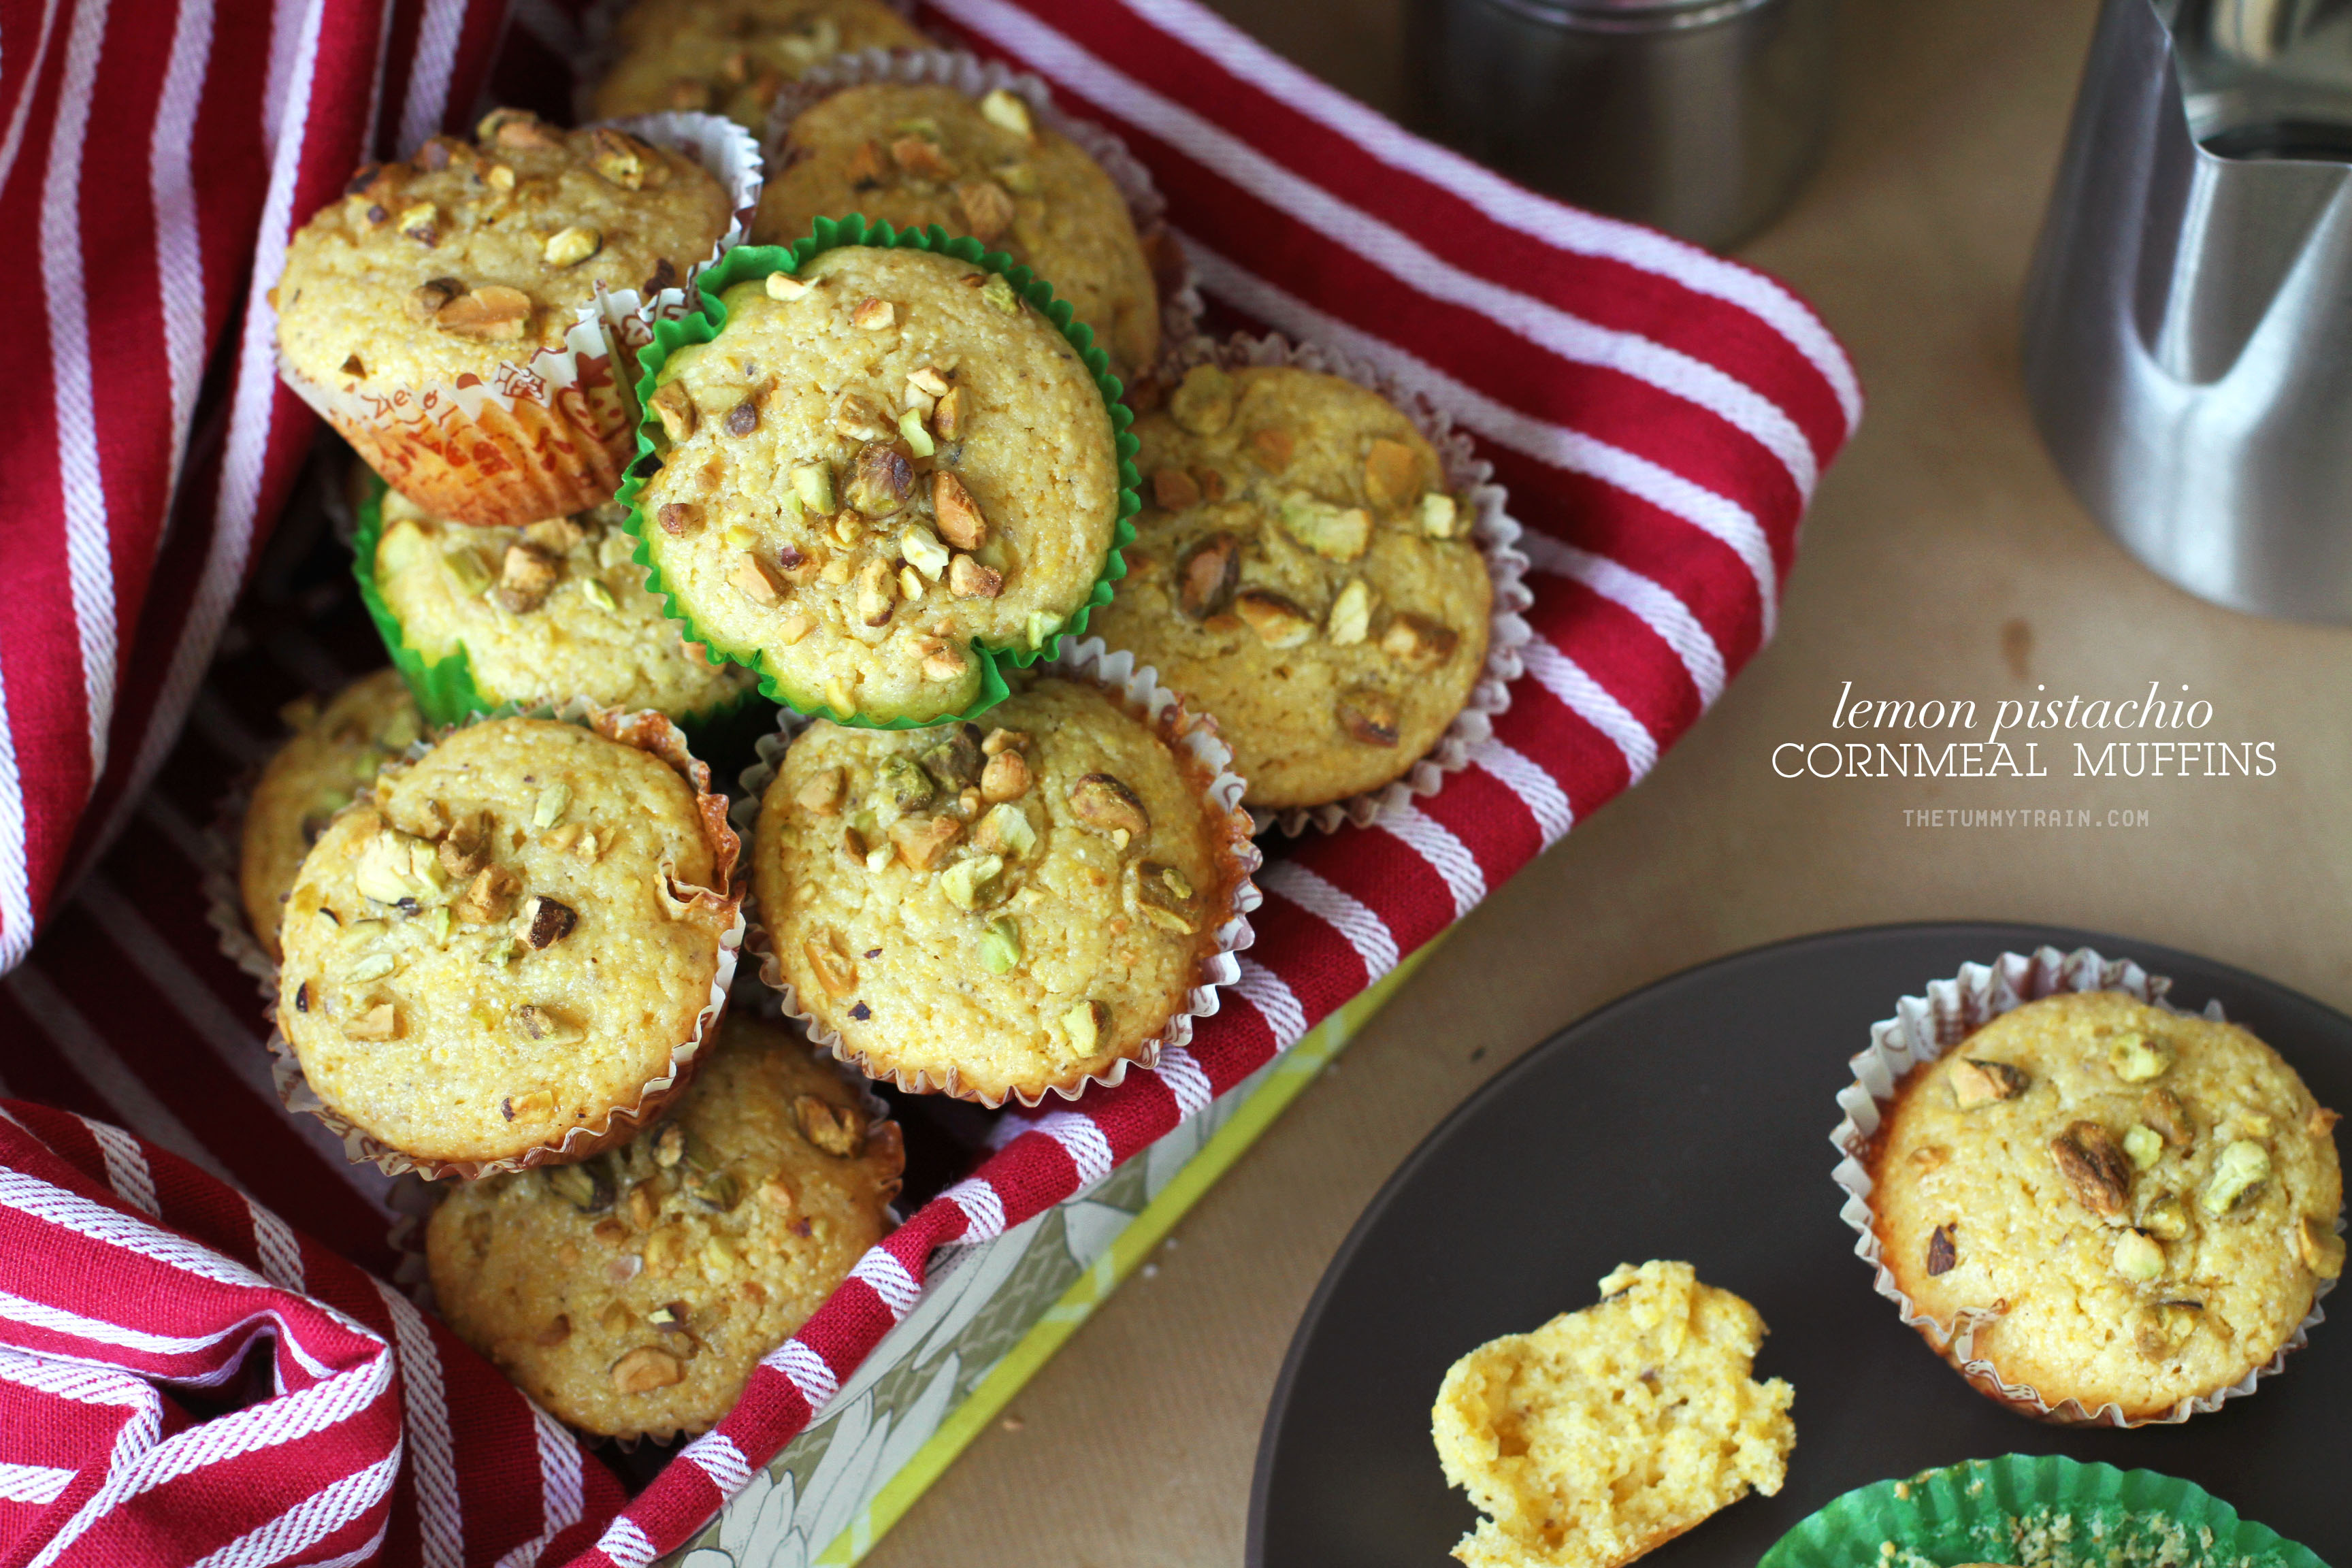 Lemon Pistachio Corn Muffins 1 - I could munch on these Lemon Pistachio Cornmeal Muffins all day